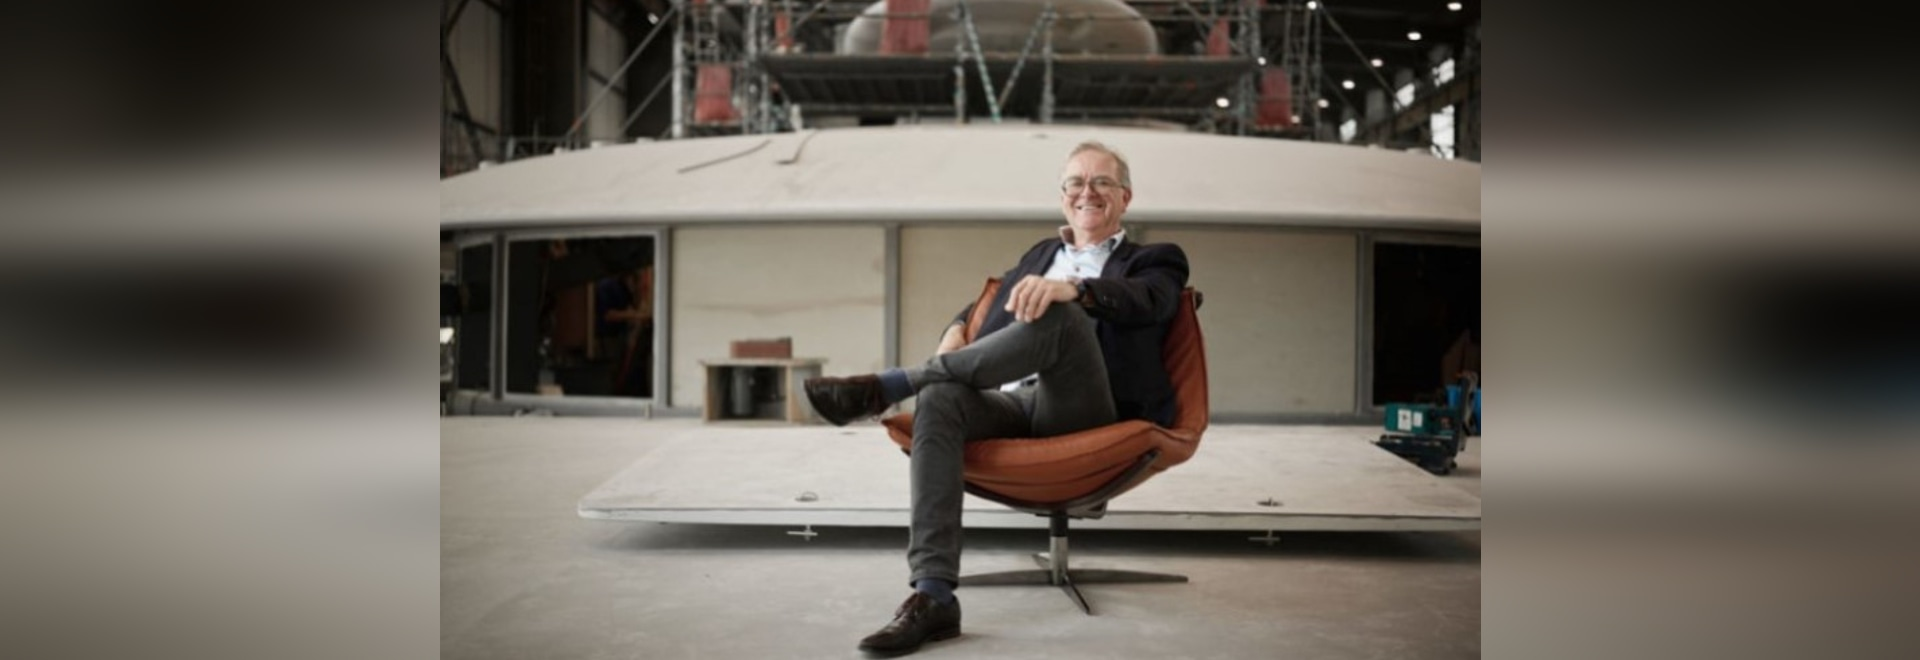 A sustainable future for all: Feadship Director Henk de Vries to give Breakfast Briefing keynote at opening of METSTRADE Show